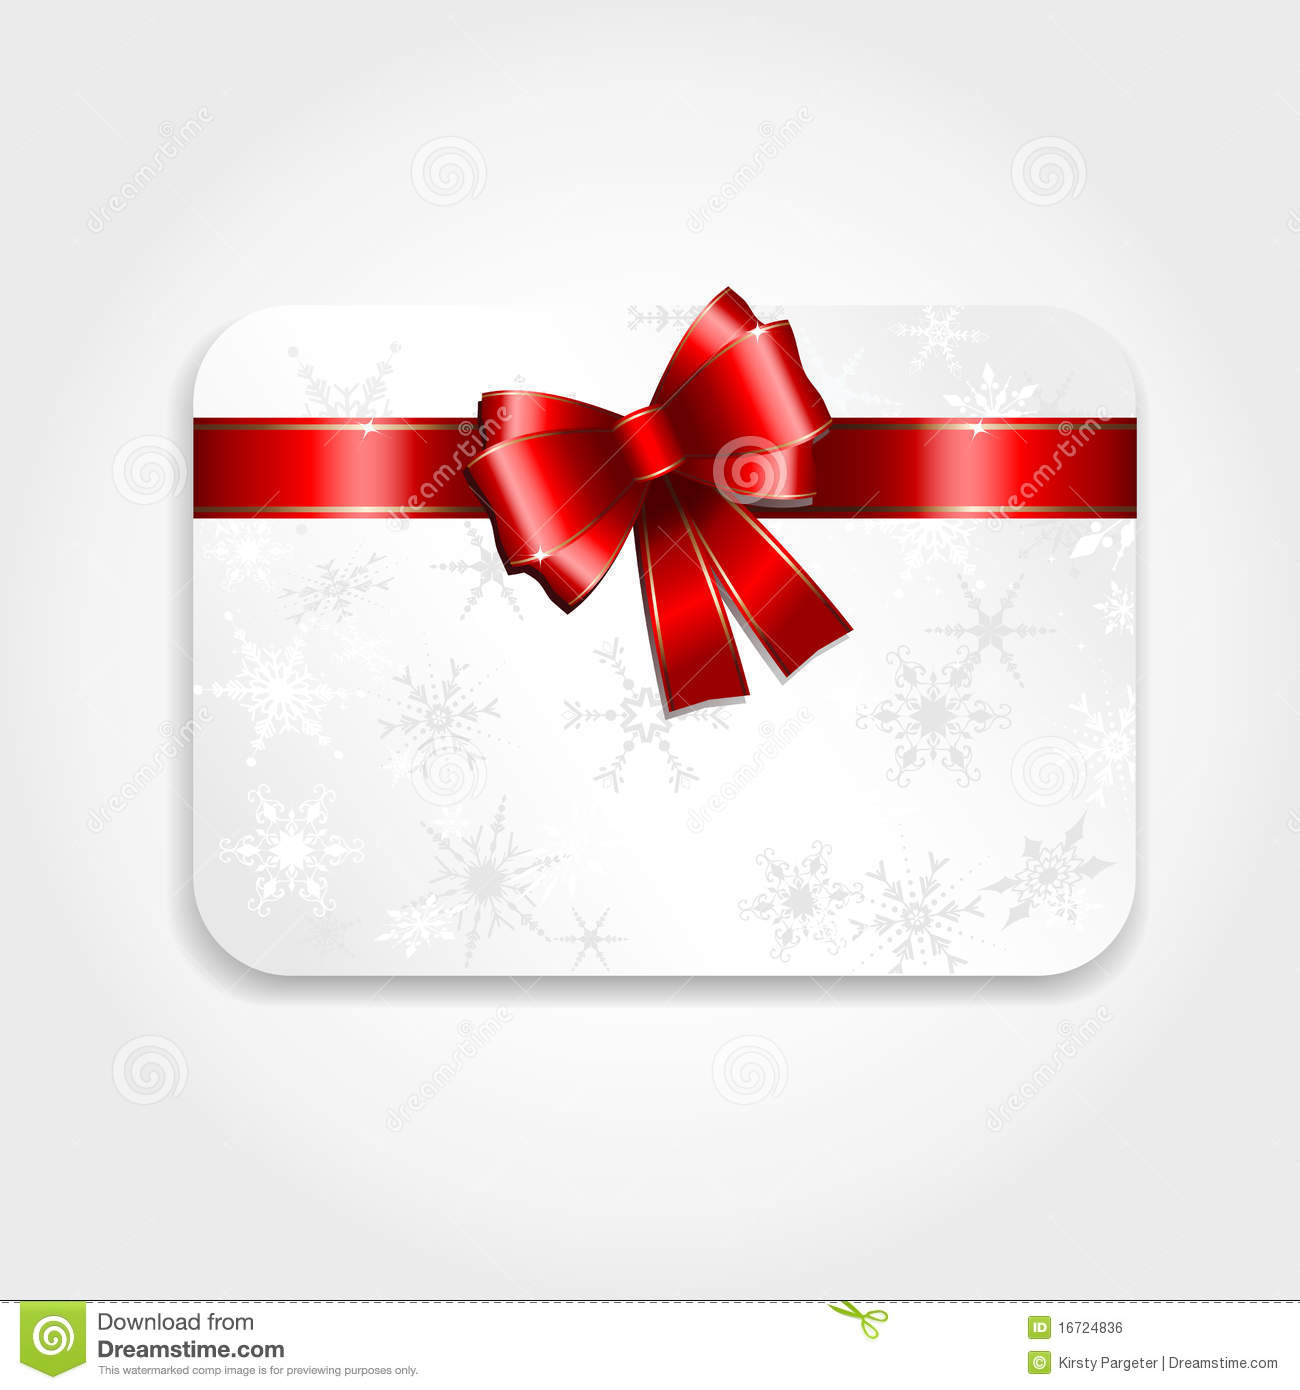 Christmas gift card stock vector. Illustration of gift  16724836